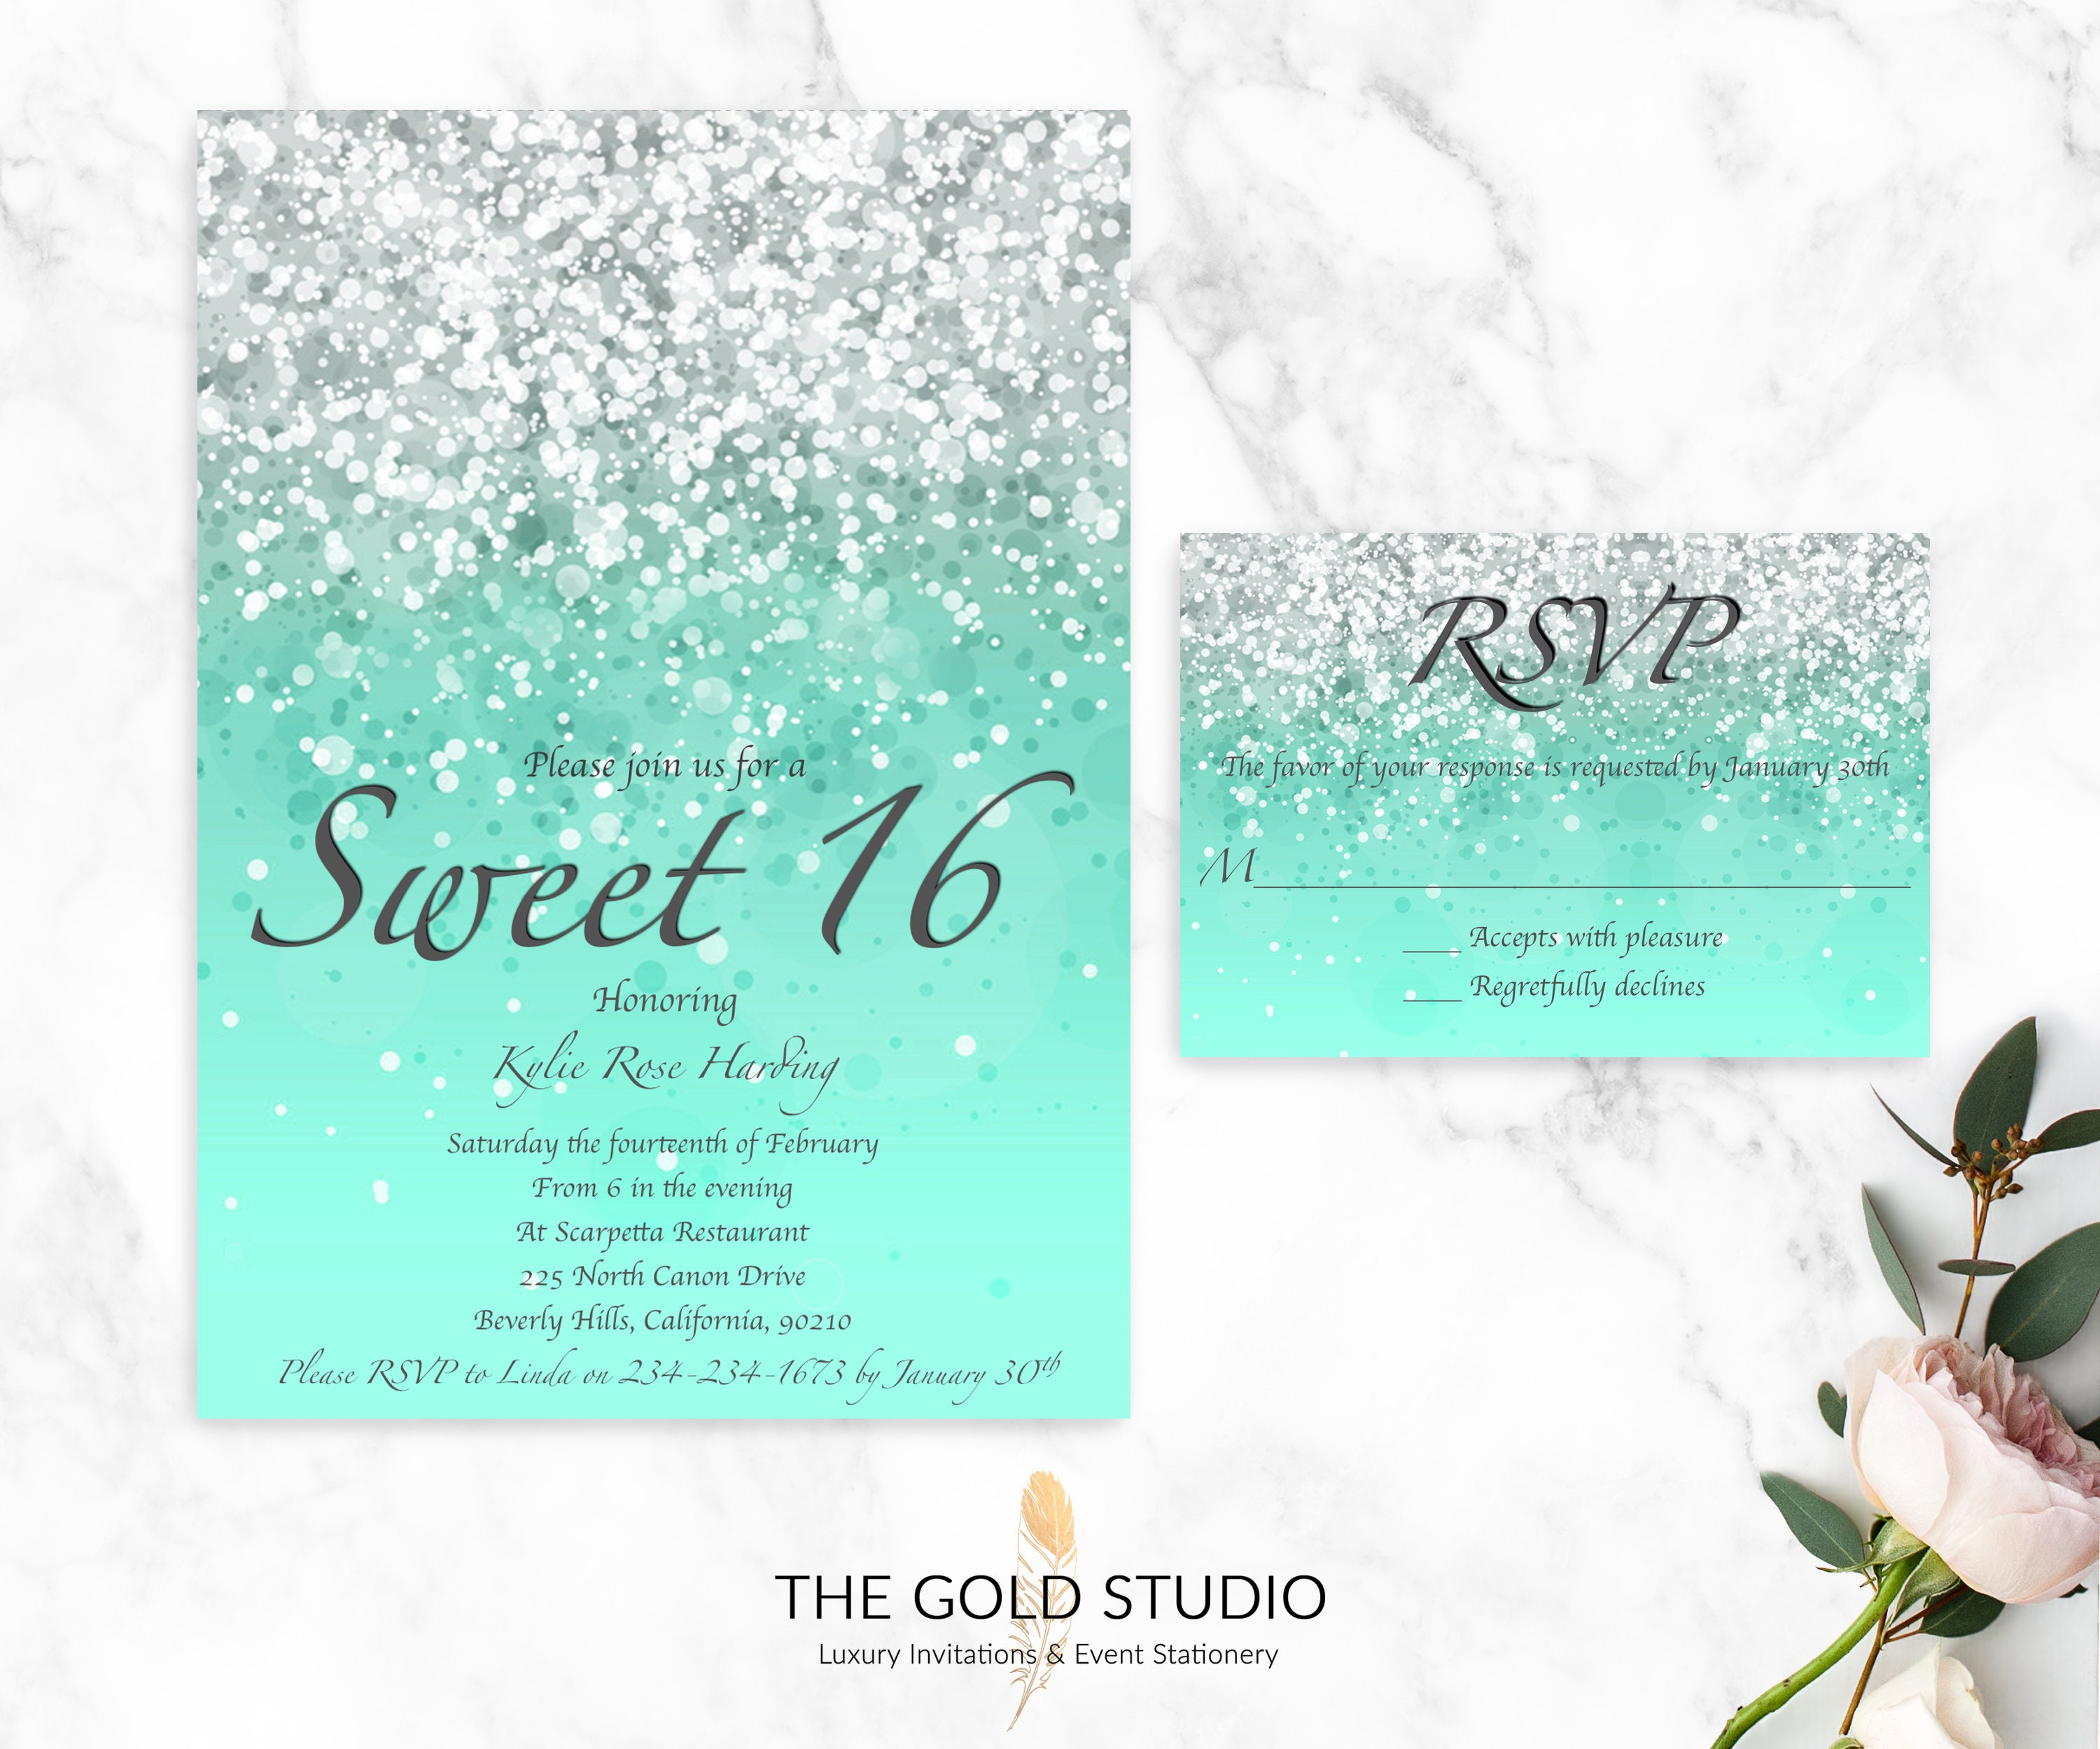 Sweet 16 Mint Green Invitations RSVP Cards